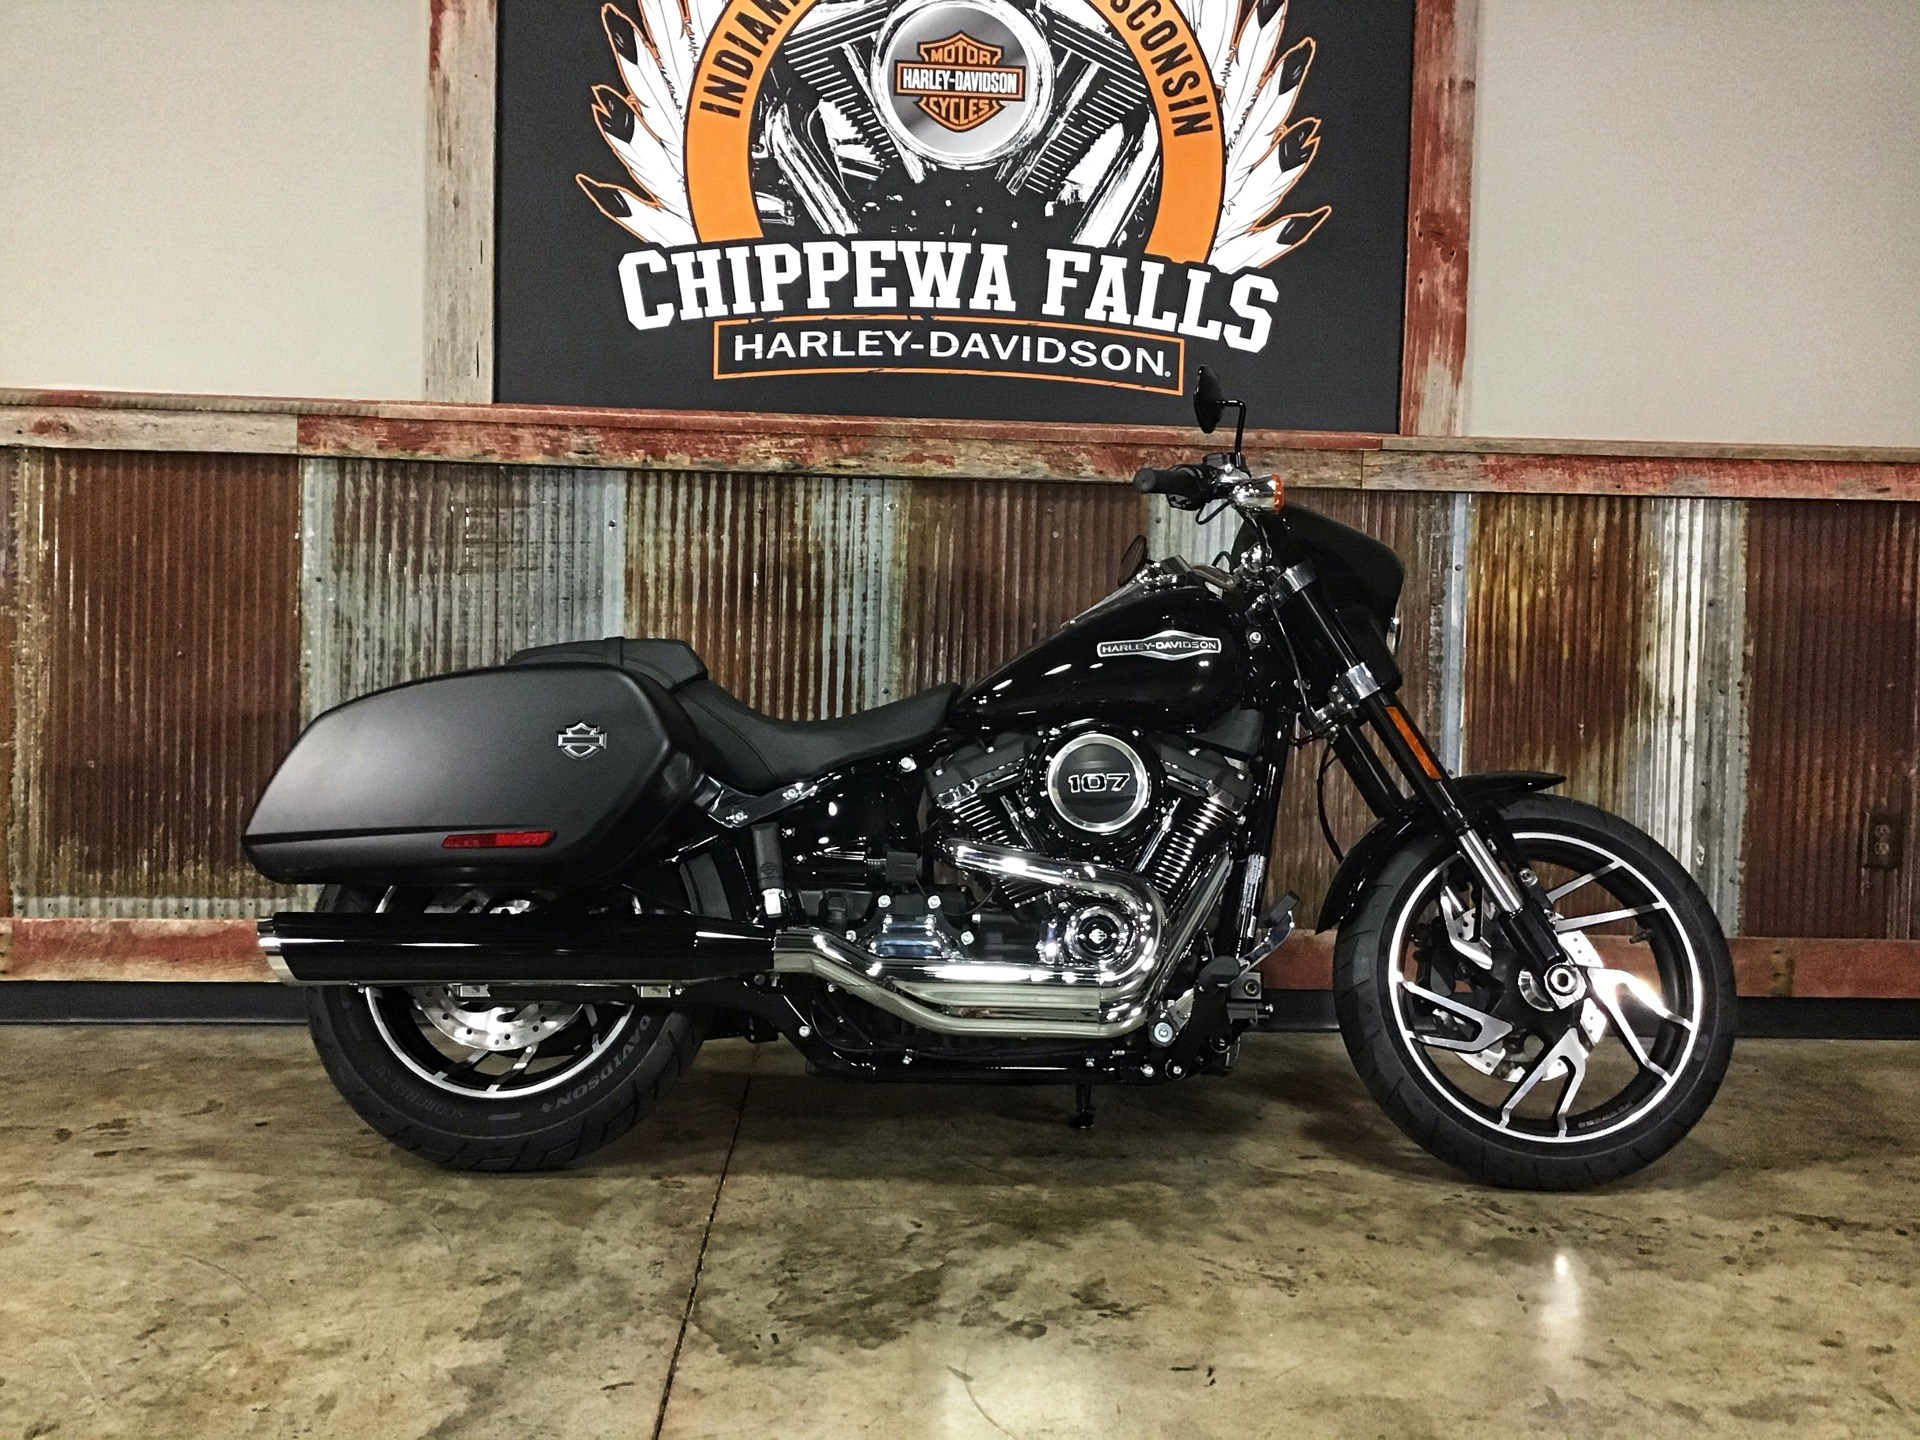 2020 Harley-Davidson Sport Glide® in Chippewa Falls, Wisconsin - Photo 1